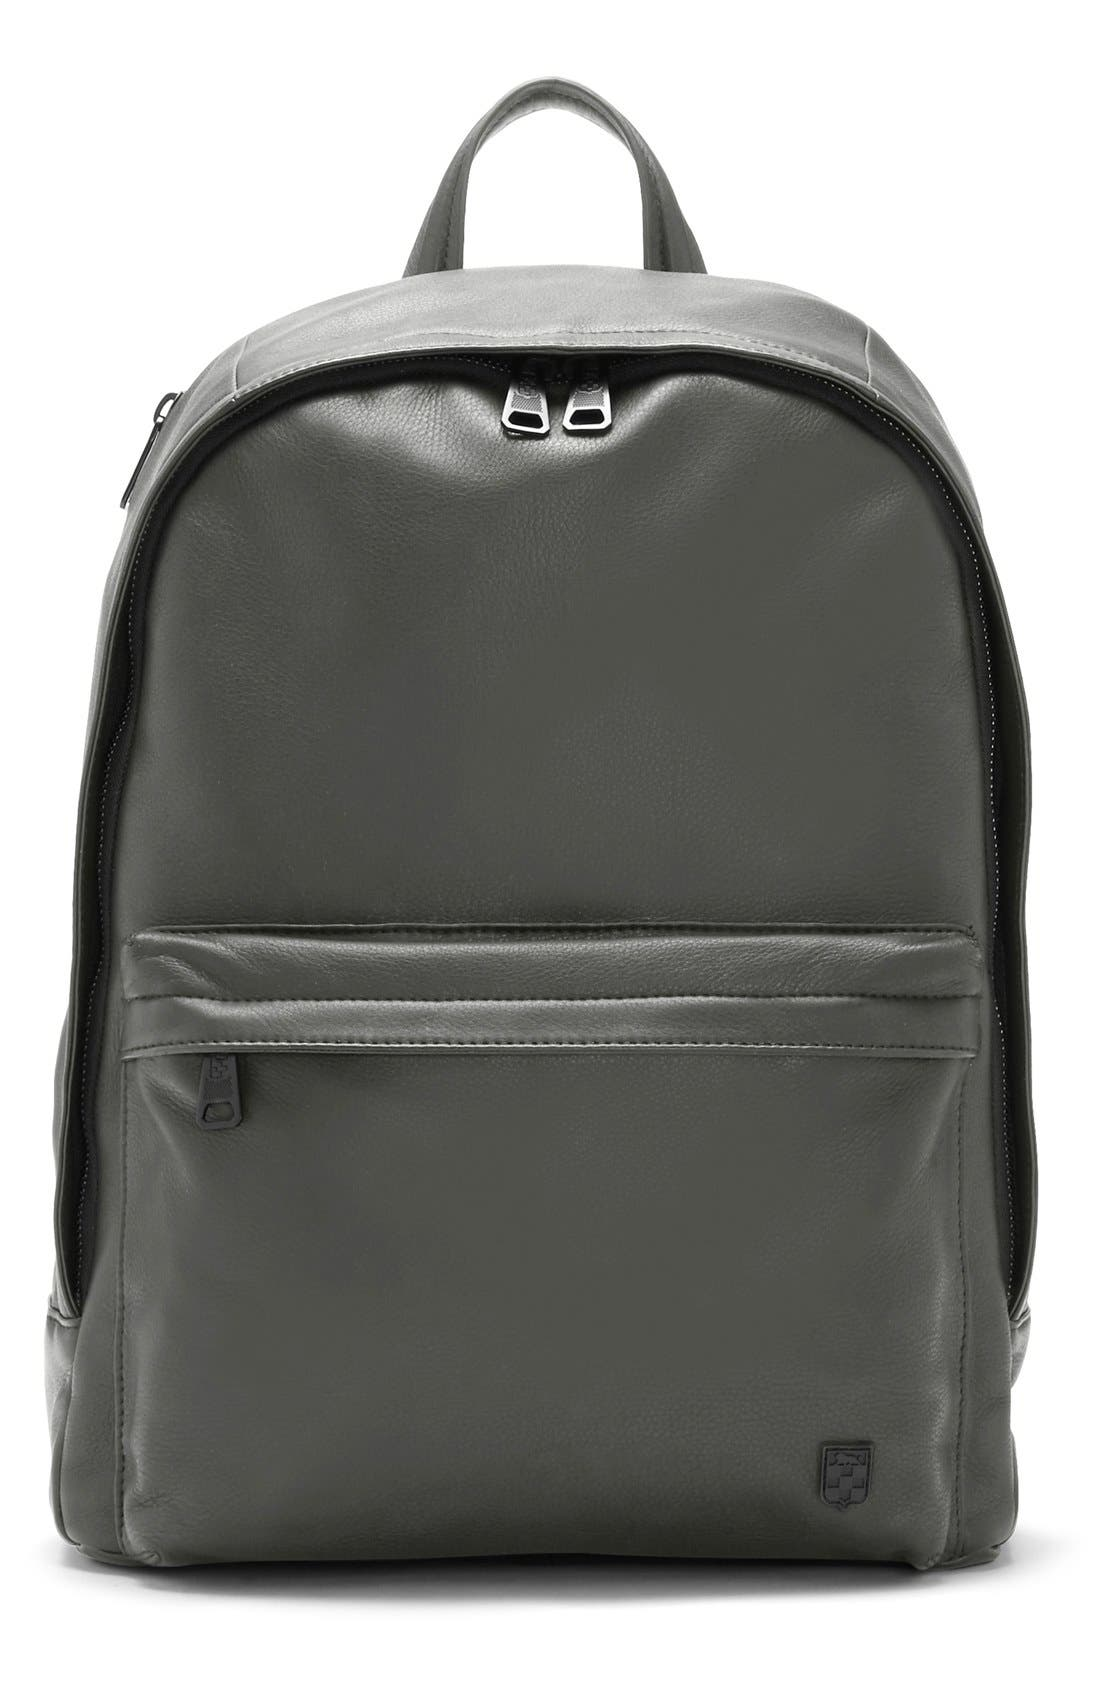 Main Image - Vince Camuto 'Tolve' Leather Backpack